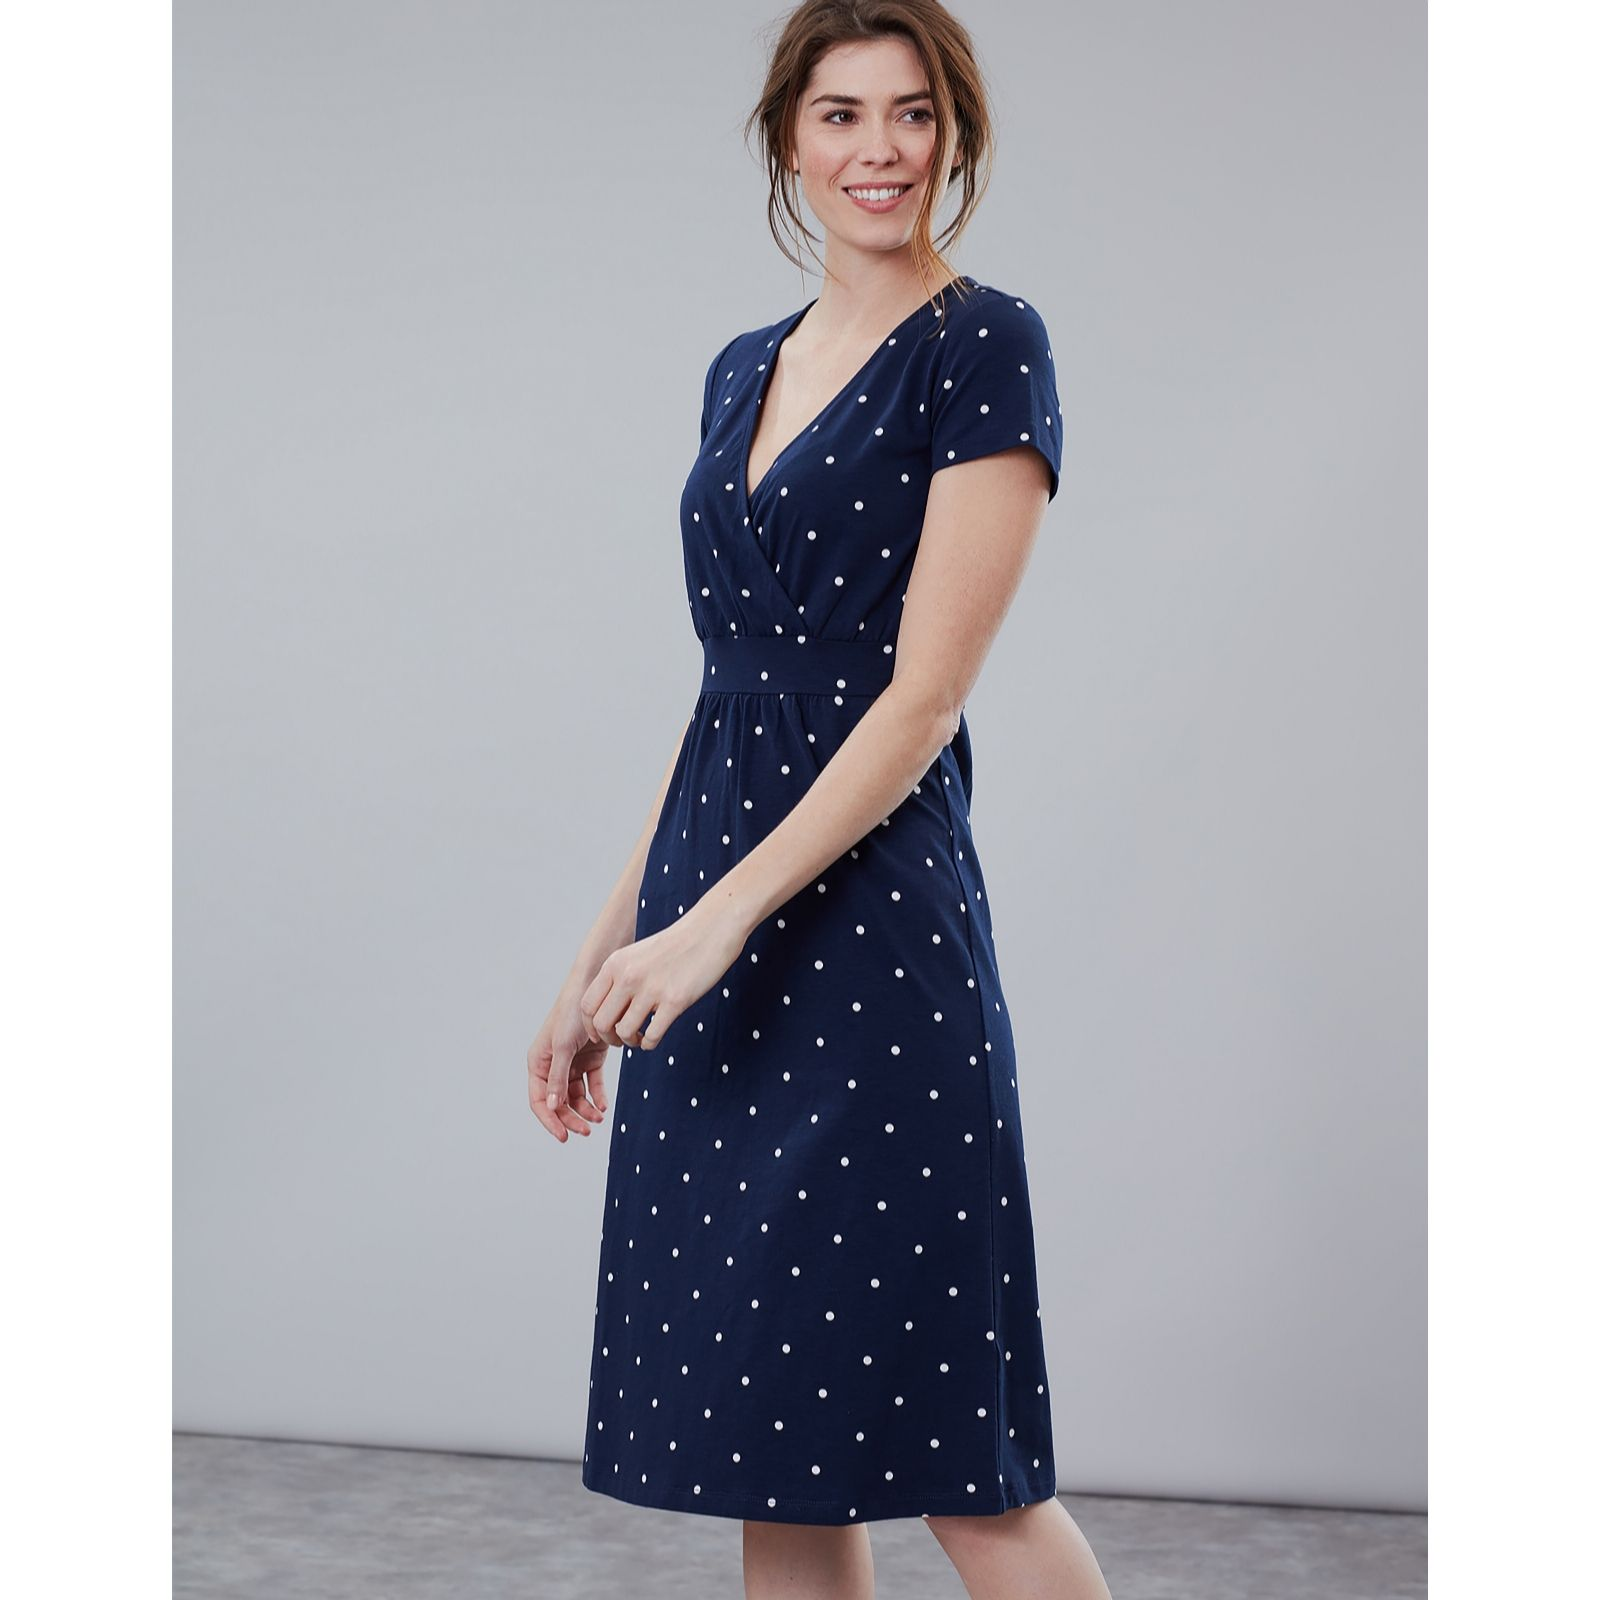 623b33a051 Joules Jude Jersey Wrap Dress - QVC UK